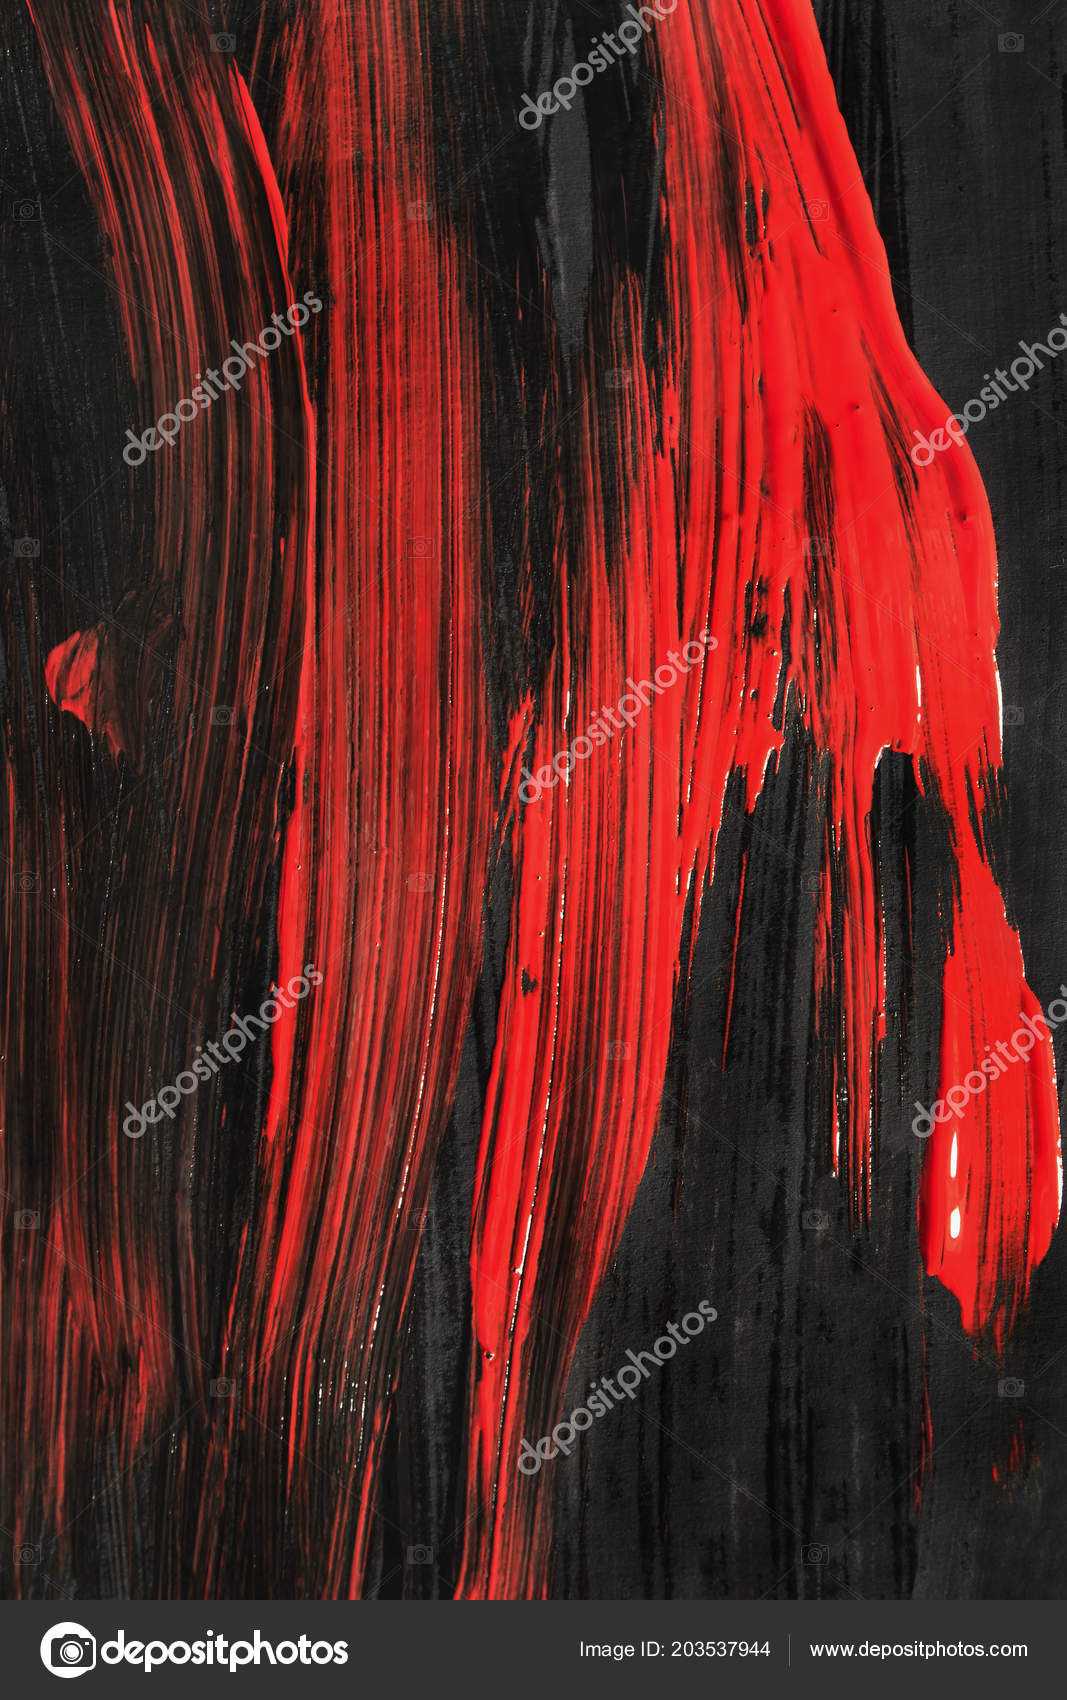 Abstract Black Red Acrylic Painting Background Stock Photo C Tarzhanova 203537944